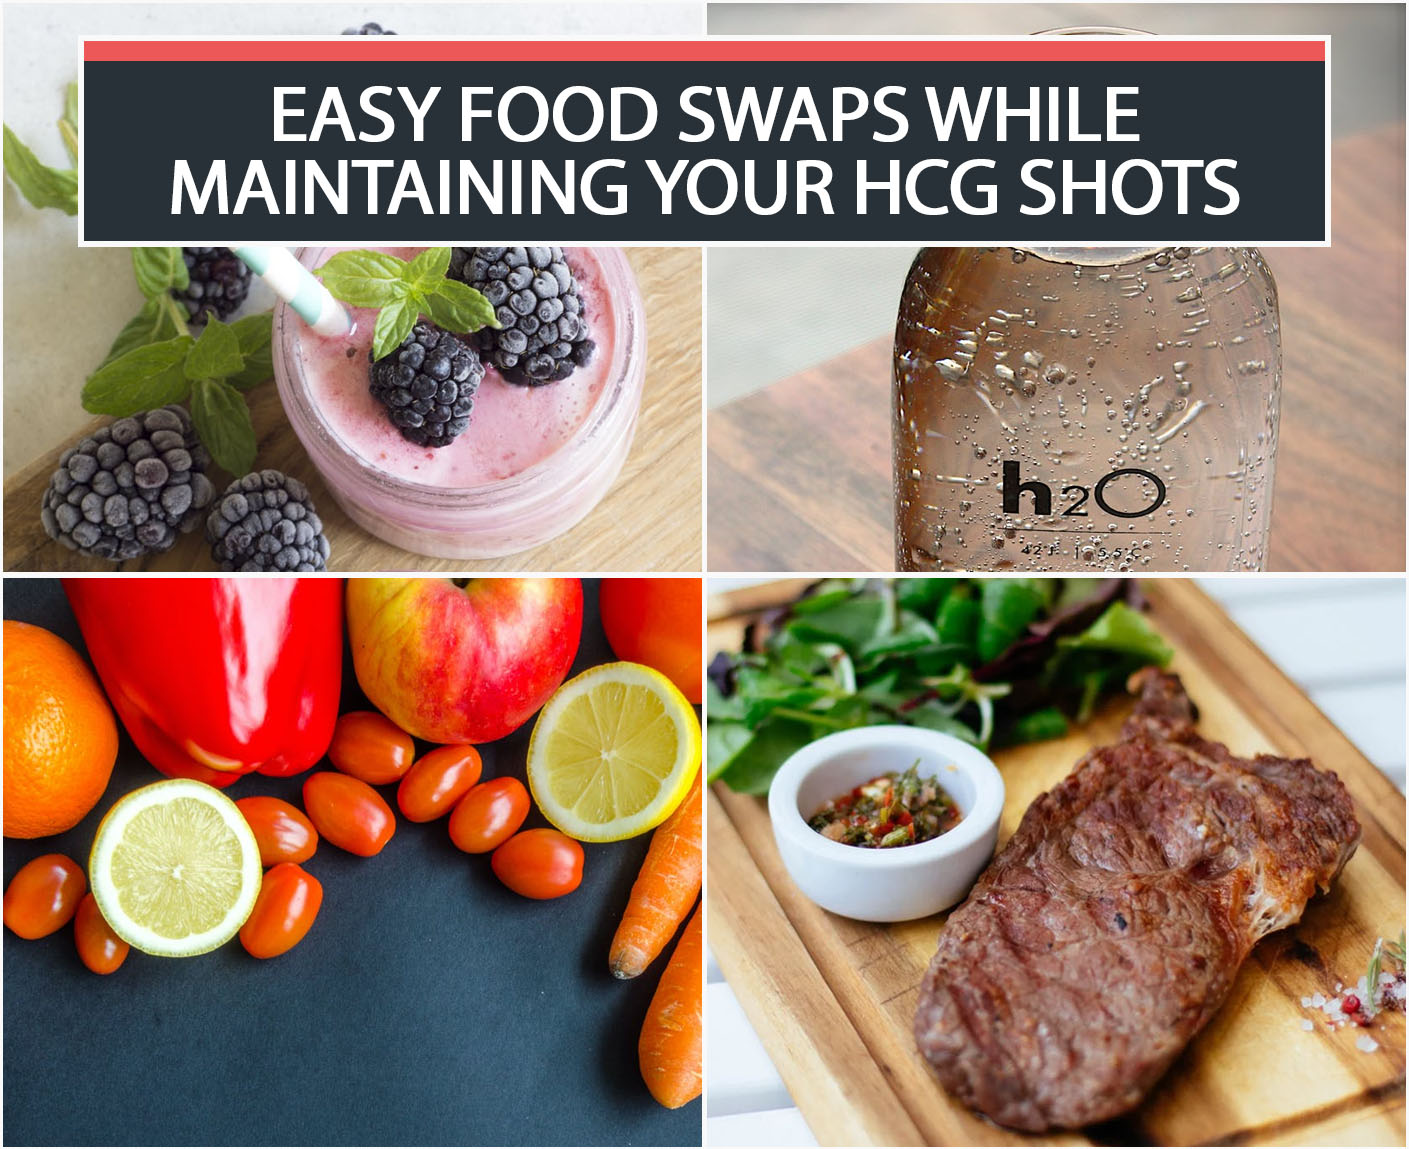 EASY FOOD SWAPS WHILE MAINTAINING YOUR HCG SHOTS